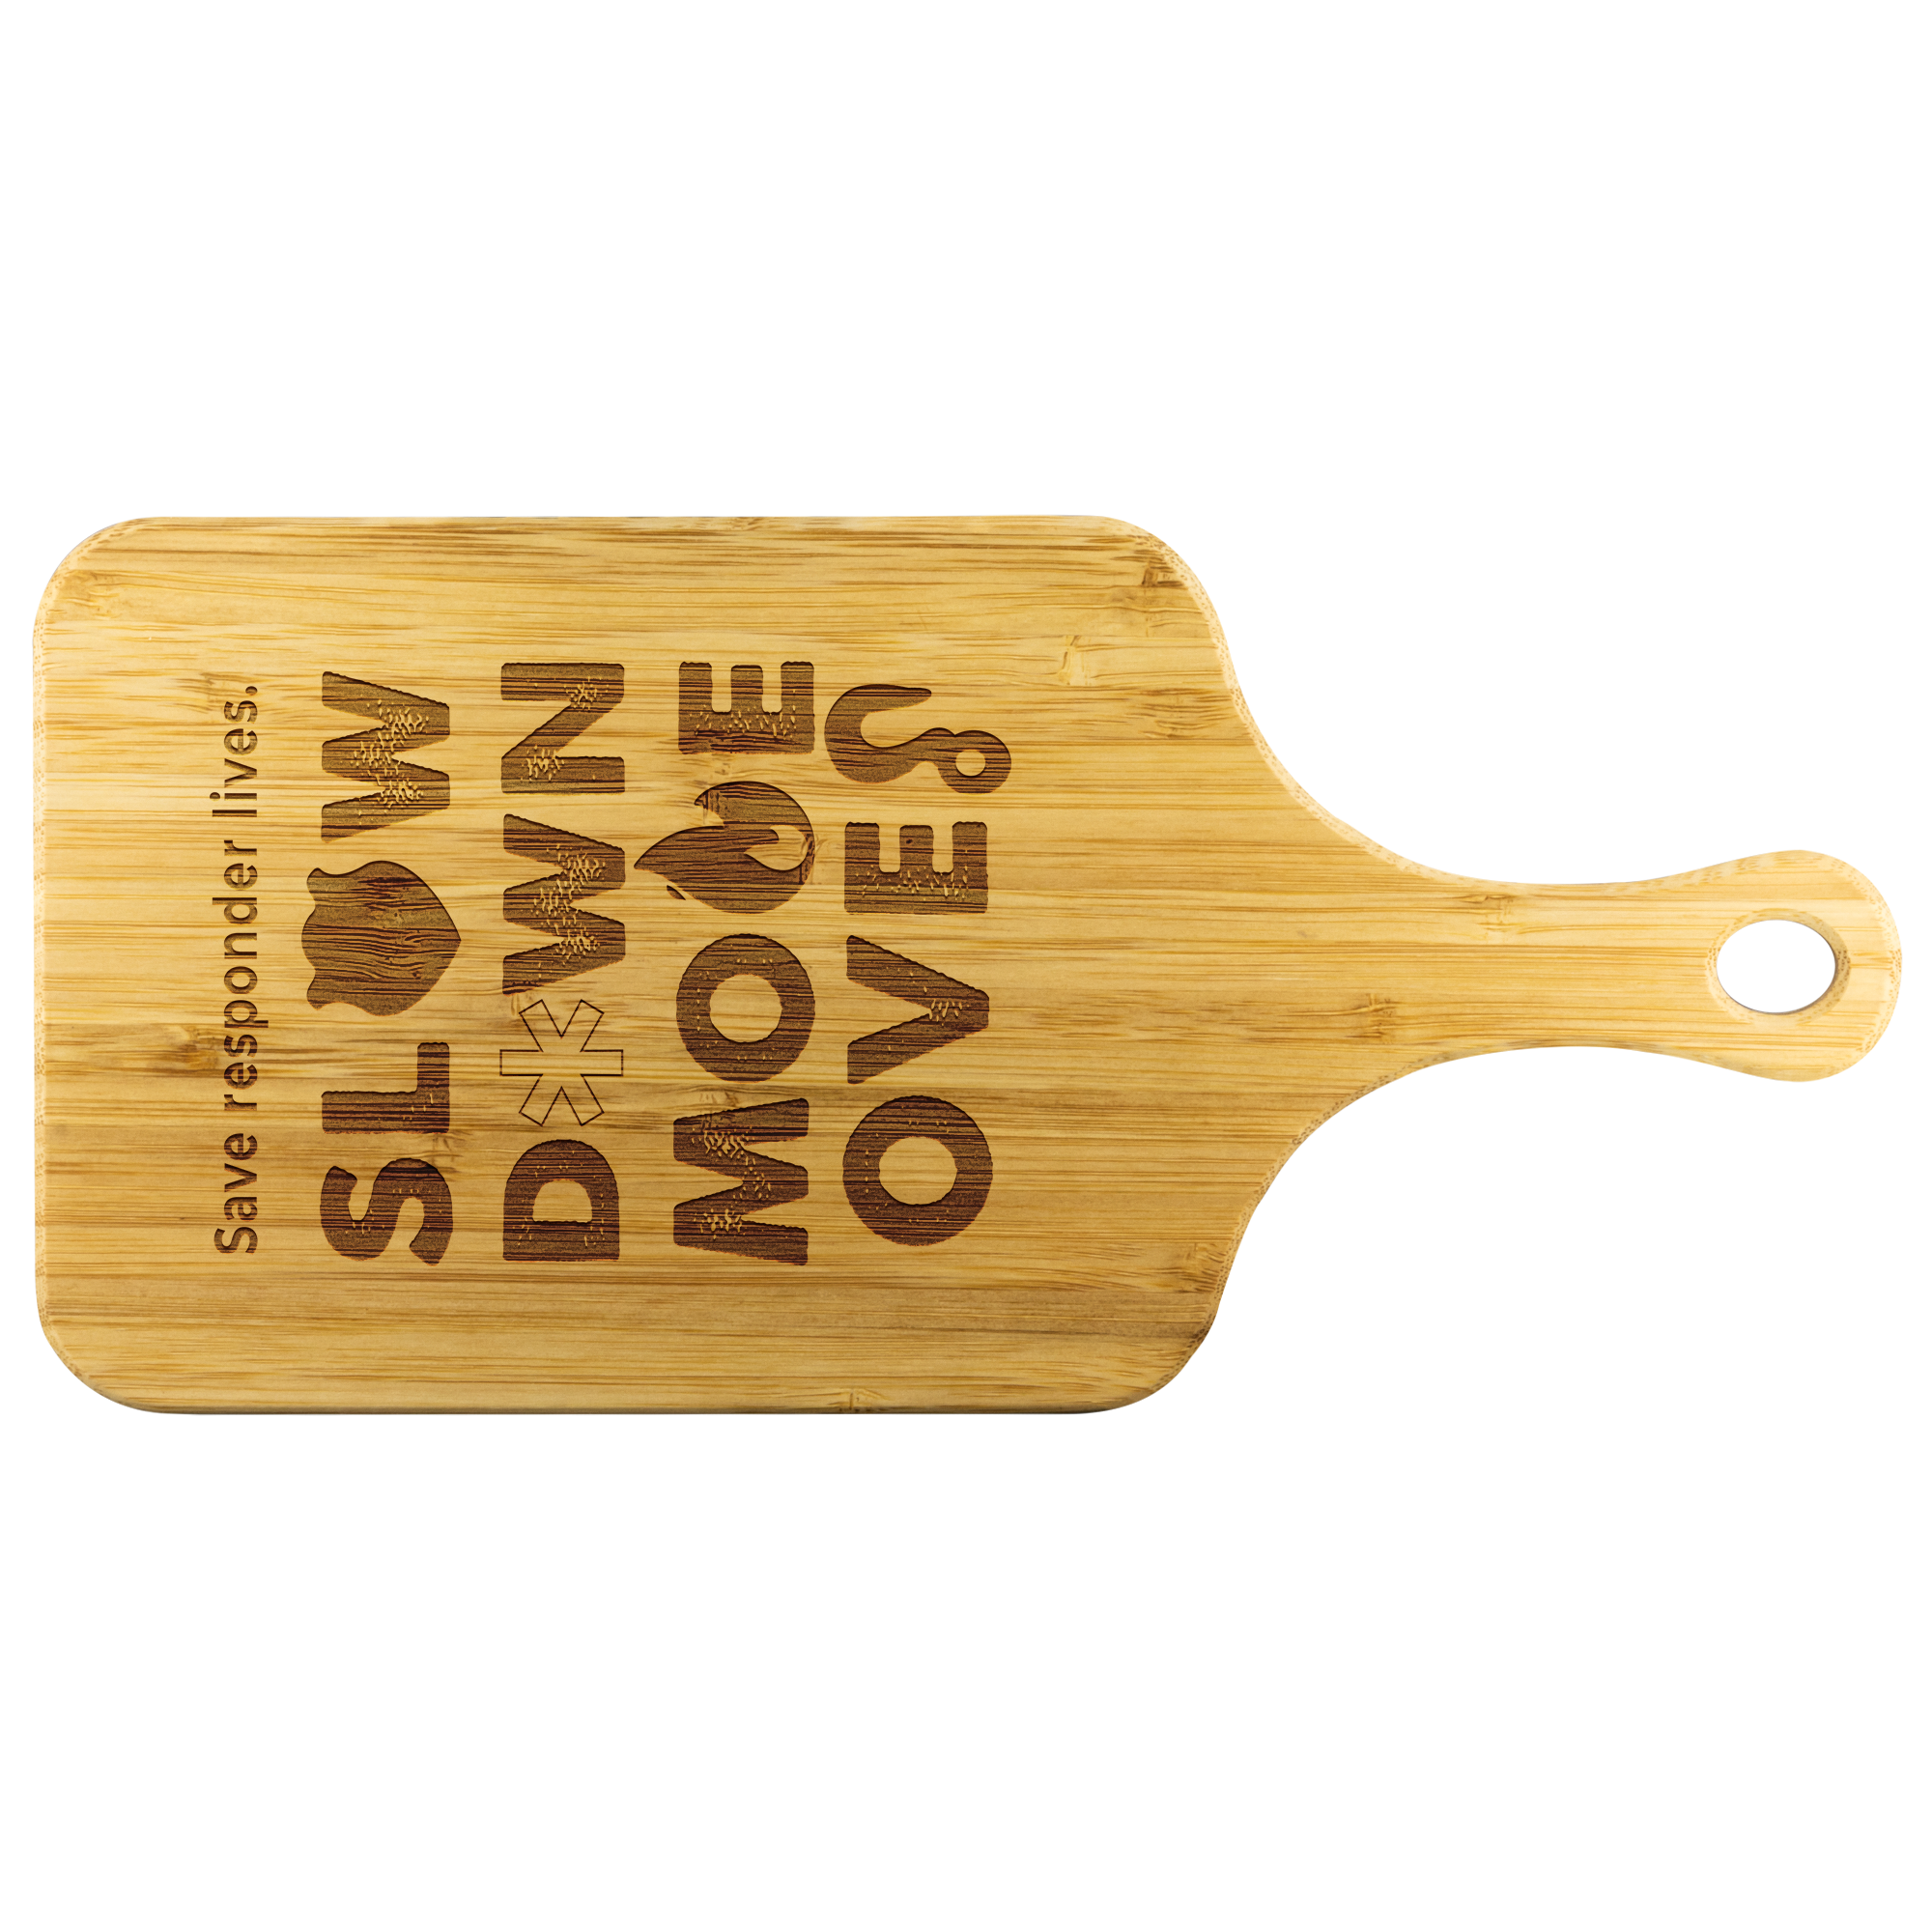 All Lives Matter Wood Cutting Board